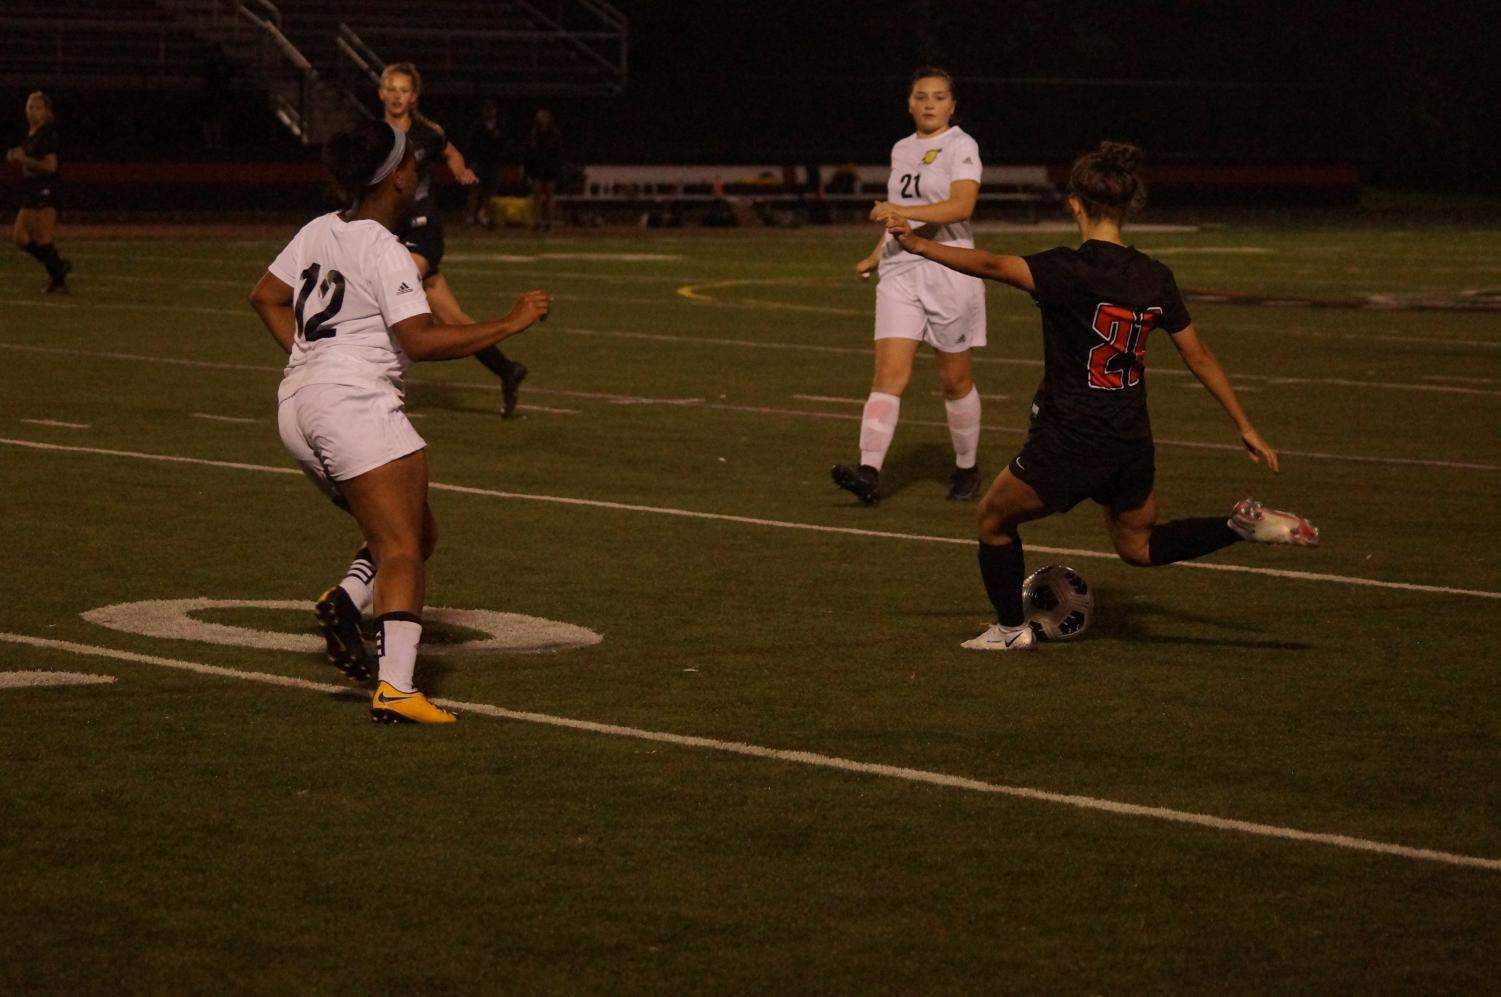 Lady+Pacers+Soccer+wins+big+on+senior+night